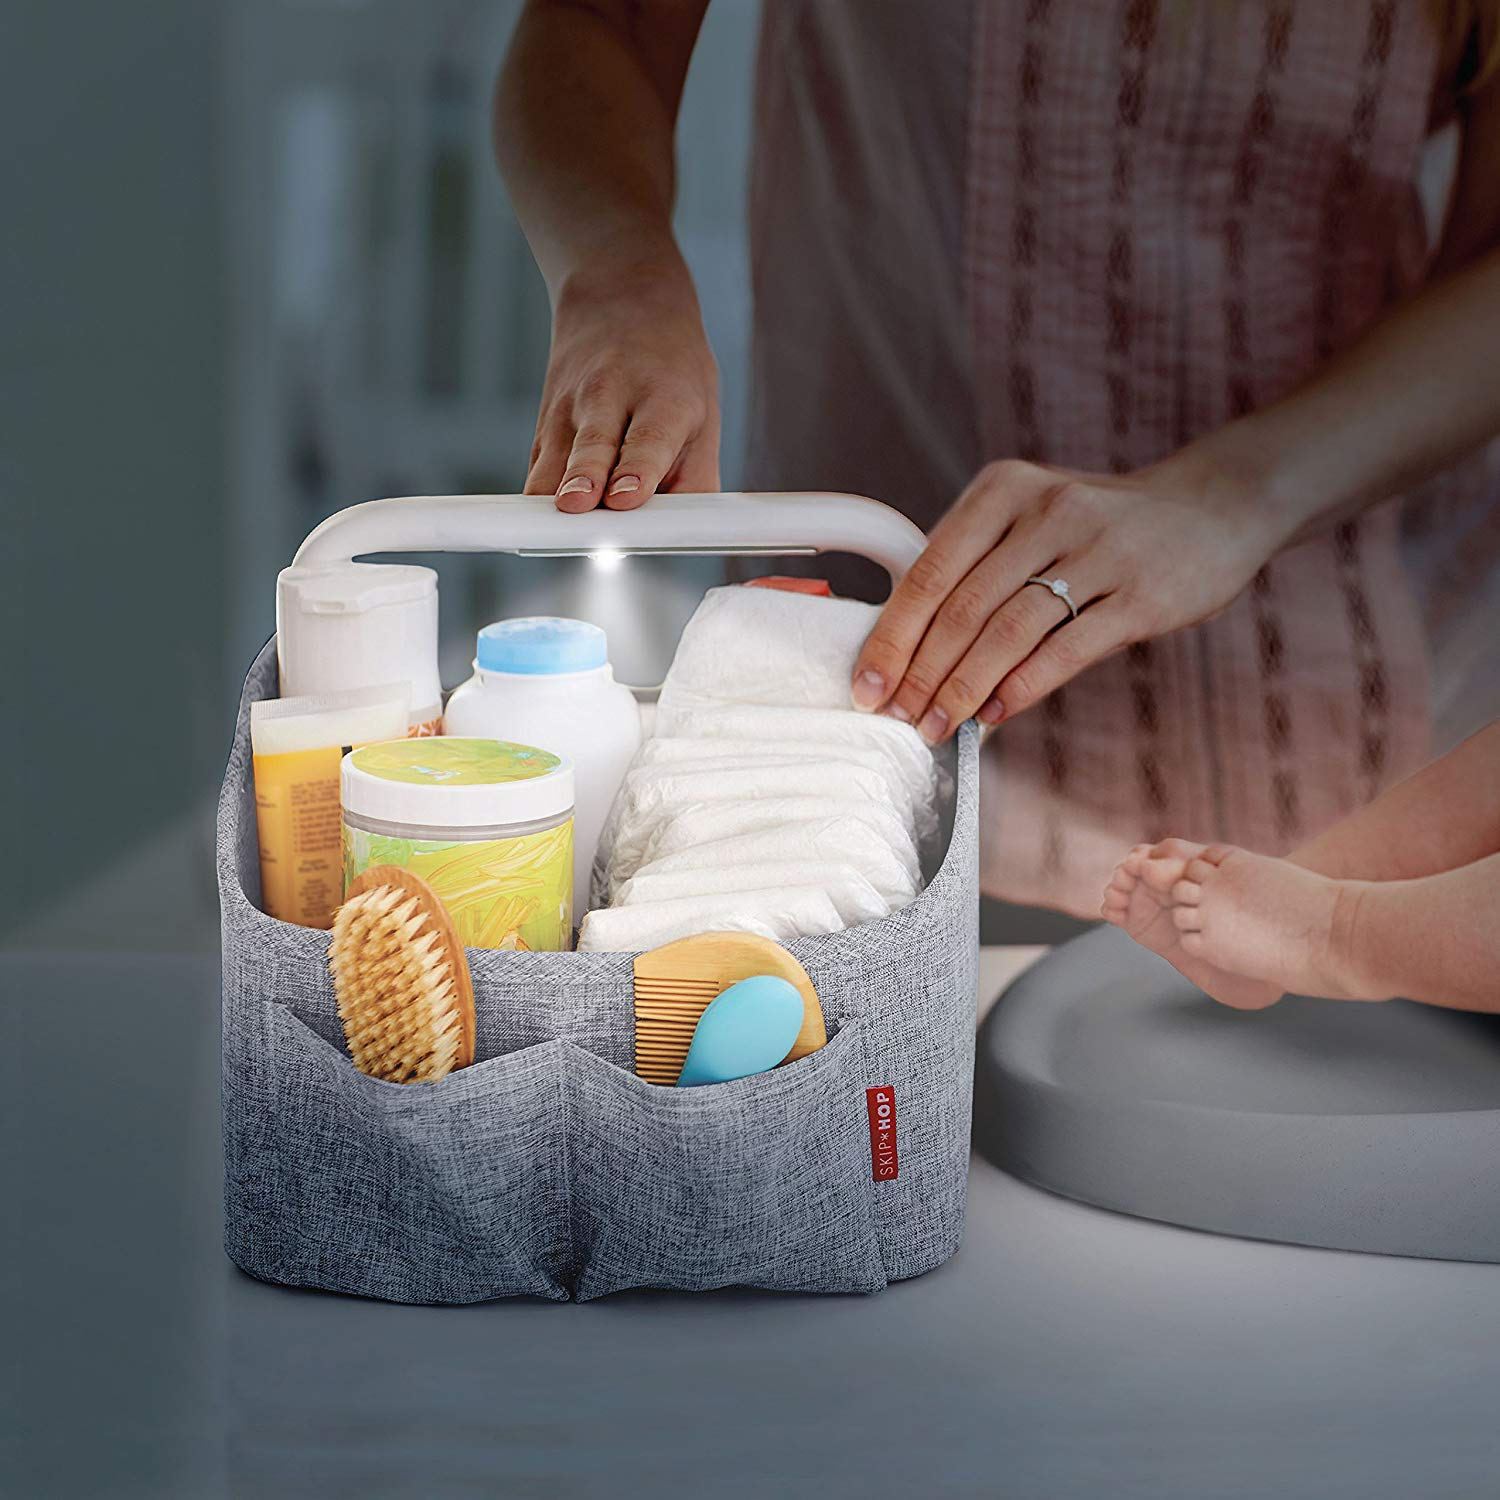 Best baby gear for twins: The Skip Hop light-up diaper caddy makes it easy to find what you need without waking up both babies.